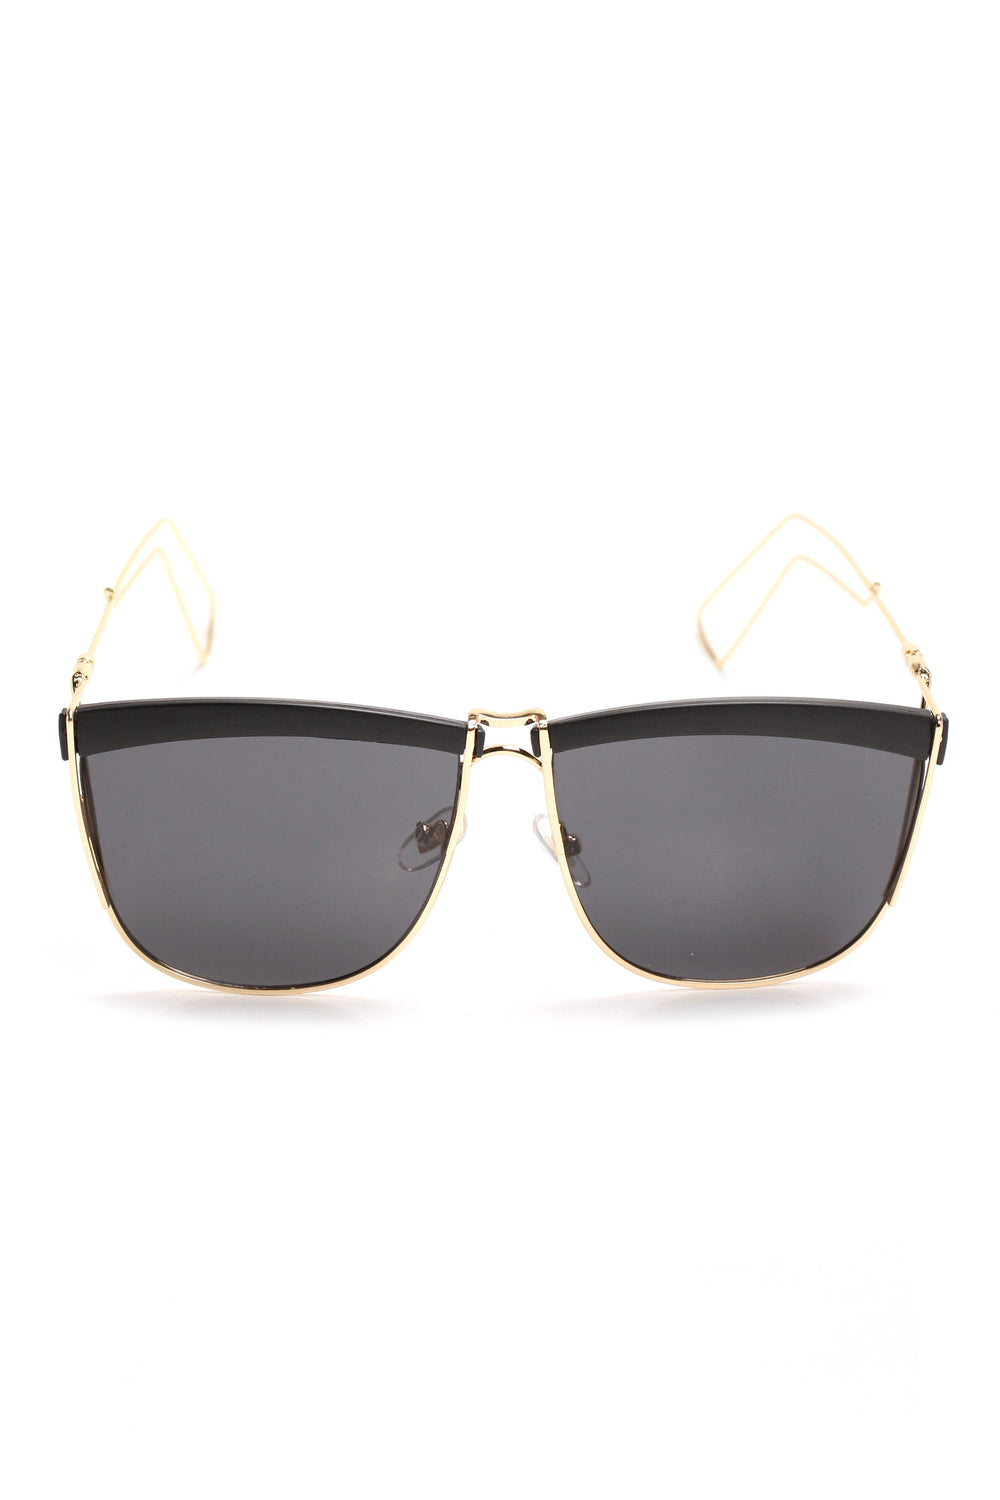 Just Do It Sunglasses - Black/Gold